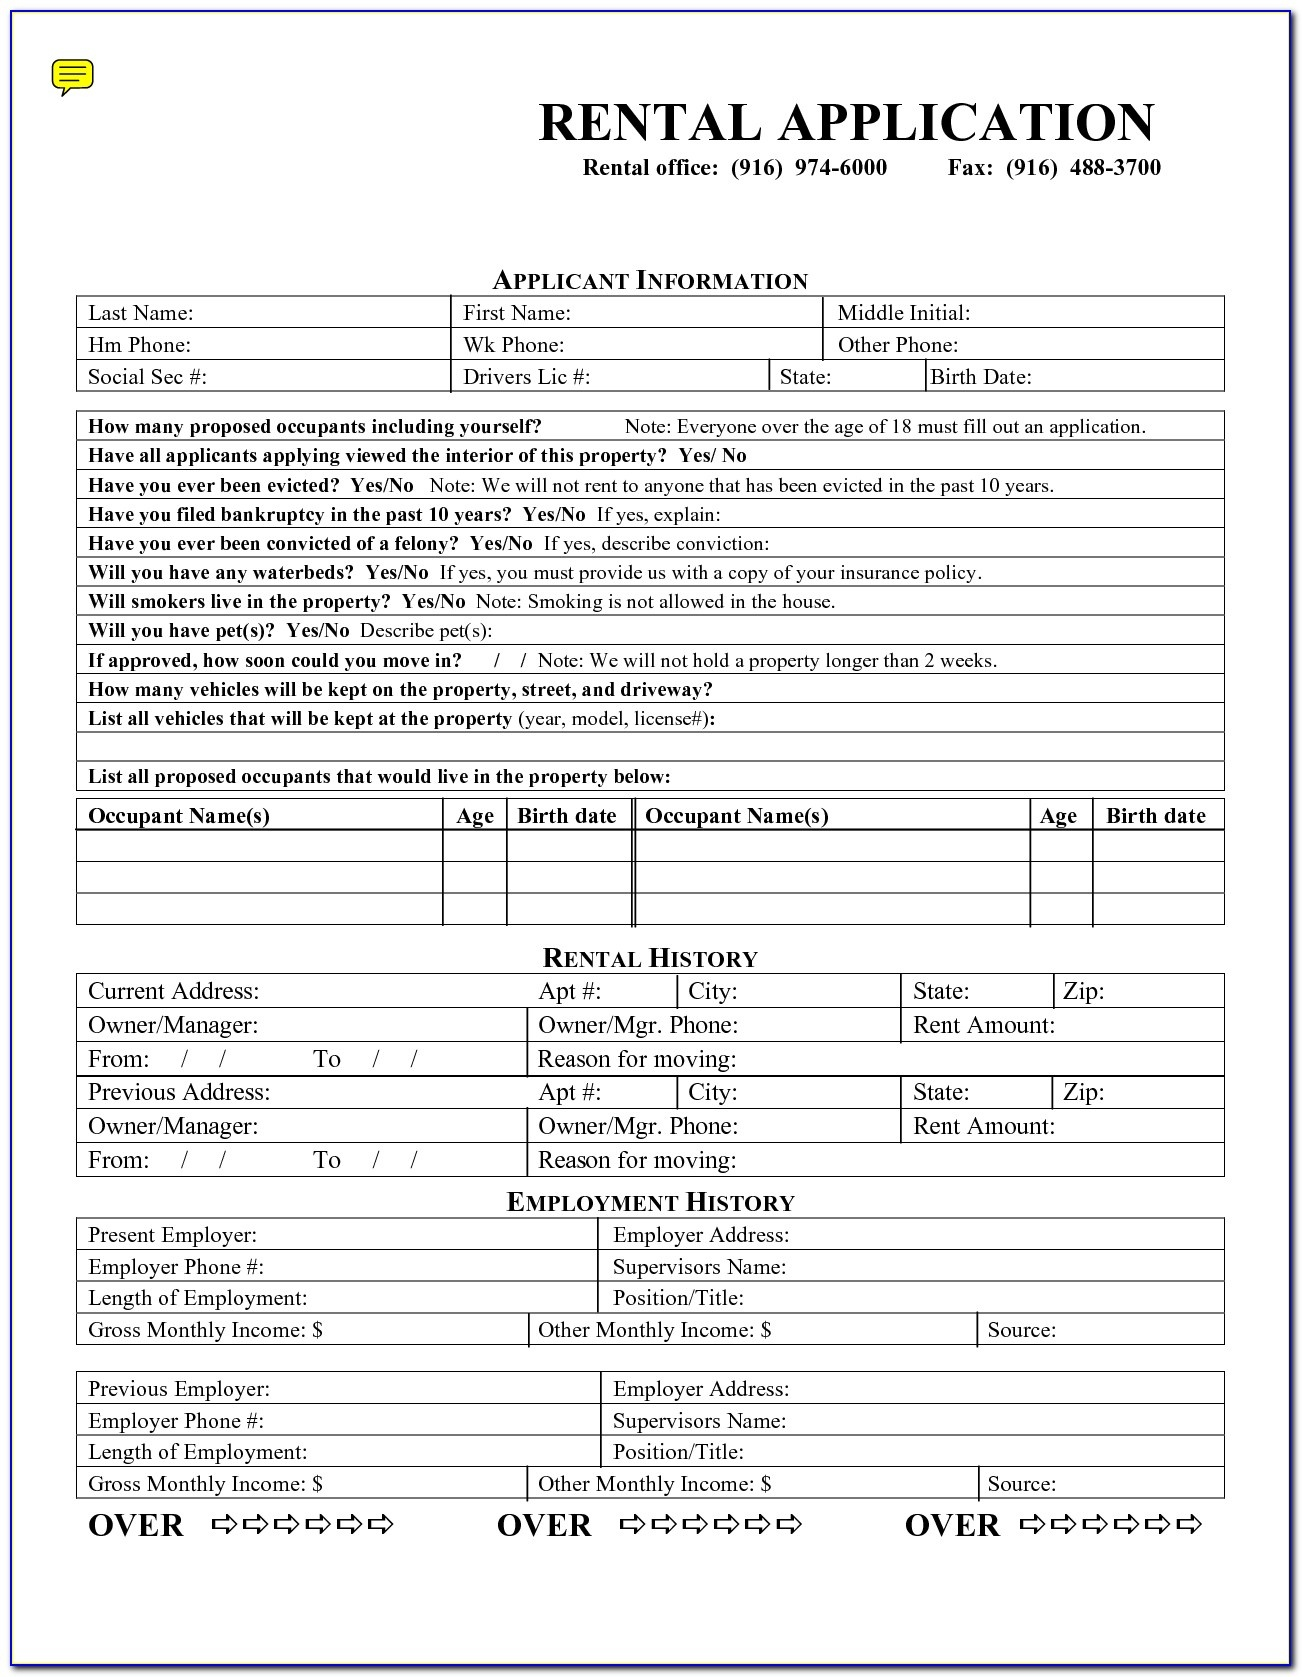 Rental Application Forms Free Printable - Form : Resume Examples - Free Printable Rental Application